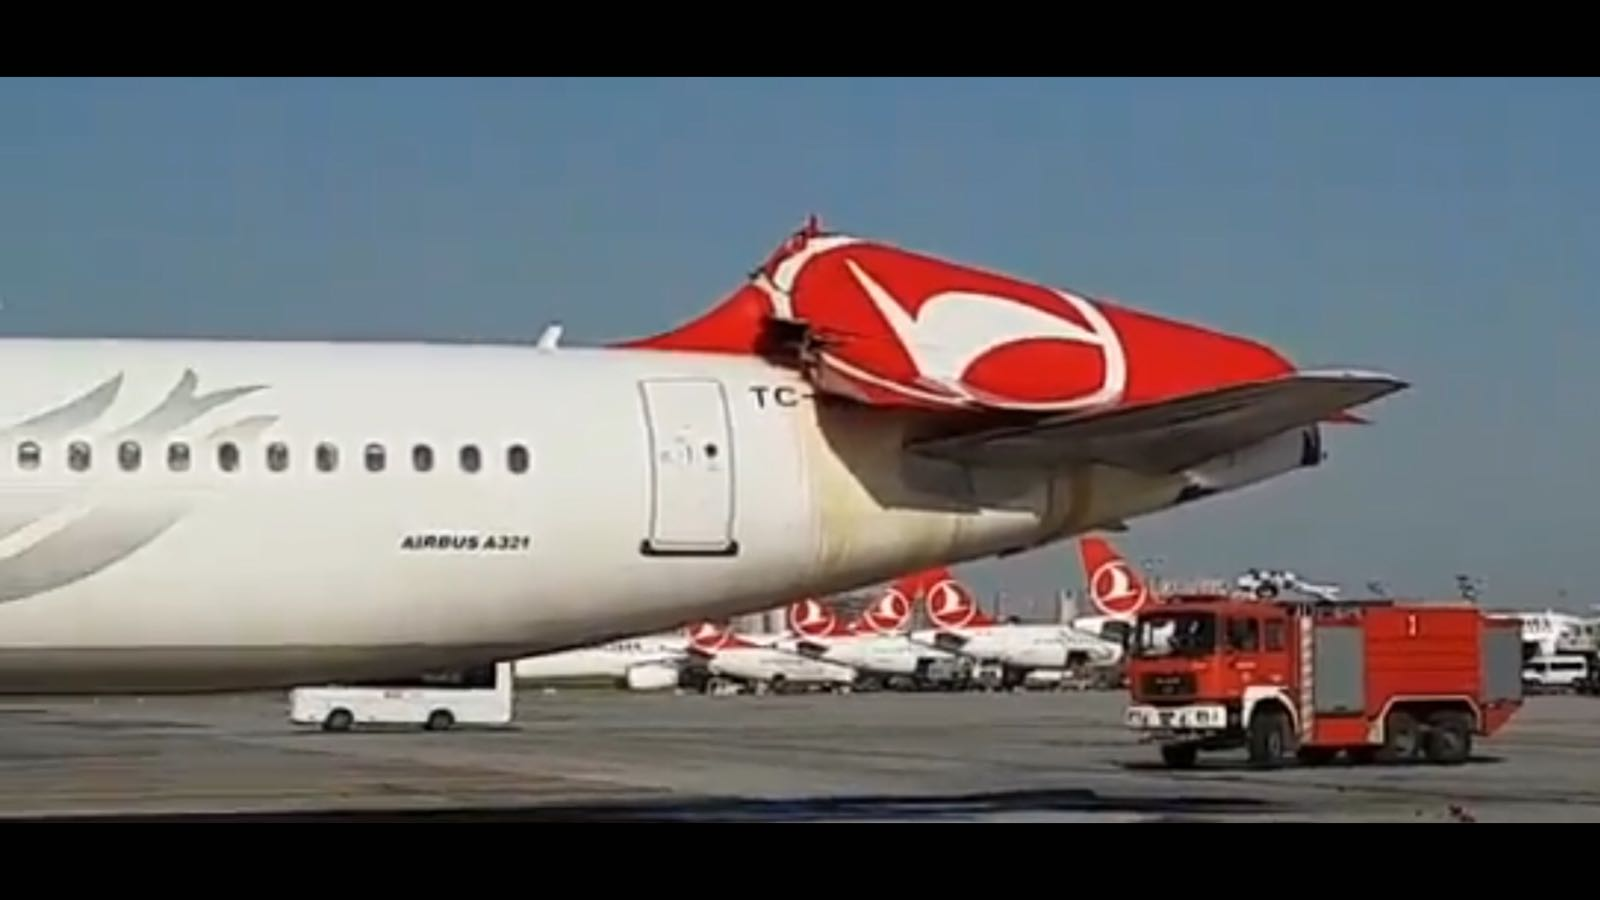 Turkish airlines plane tail smashed in dramatic collision at Istanbul Intl' Airport